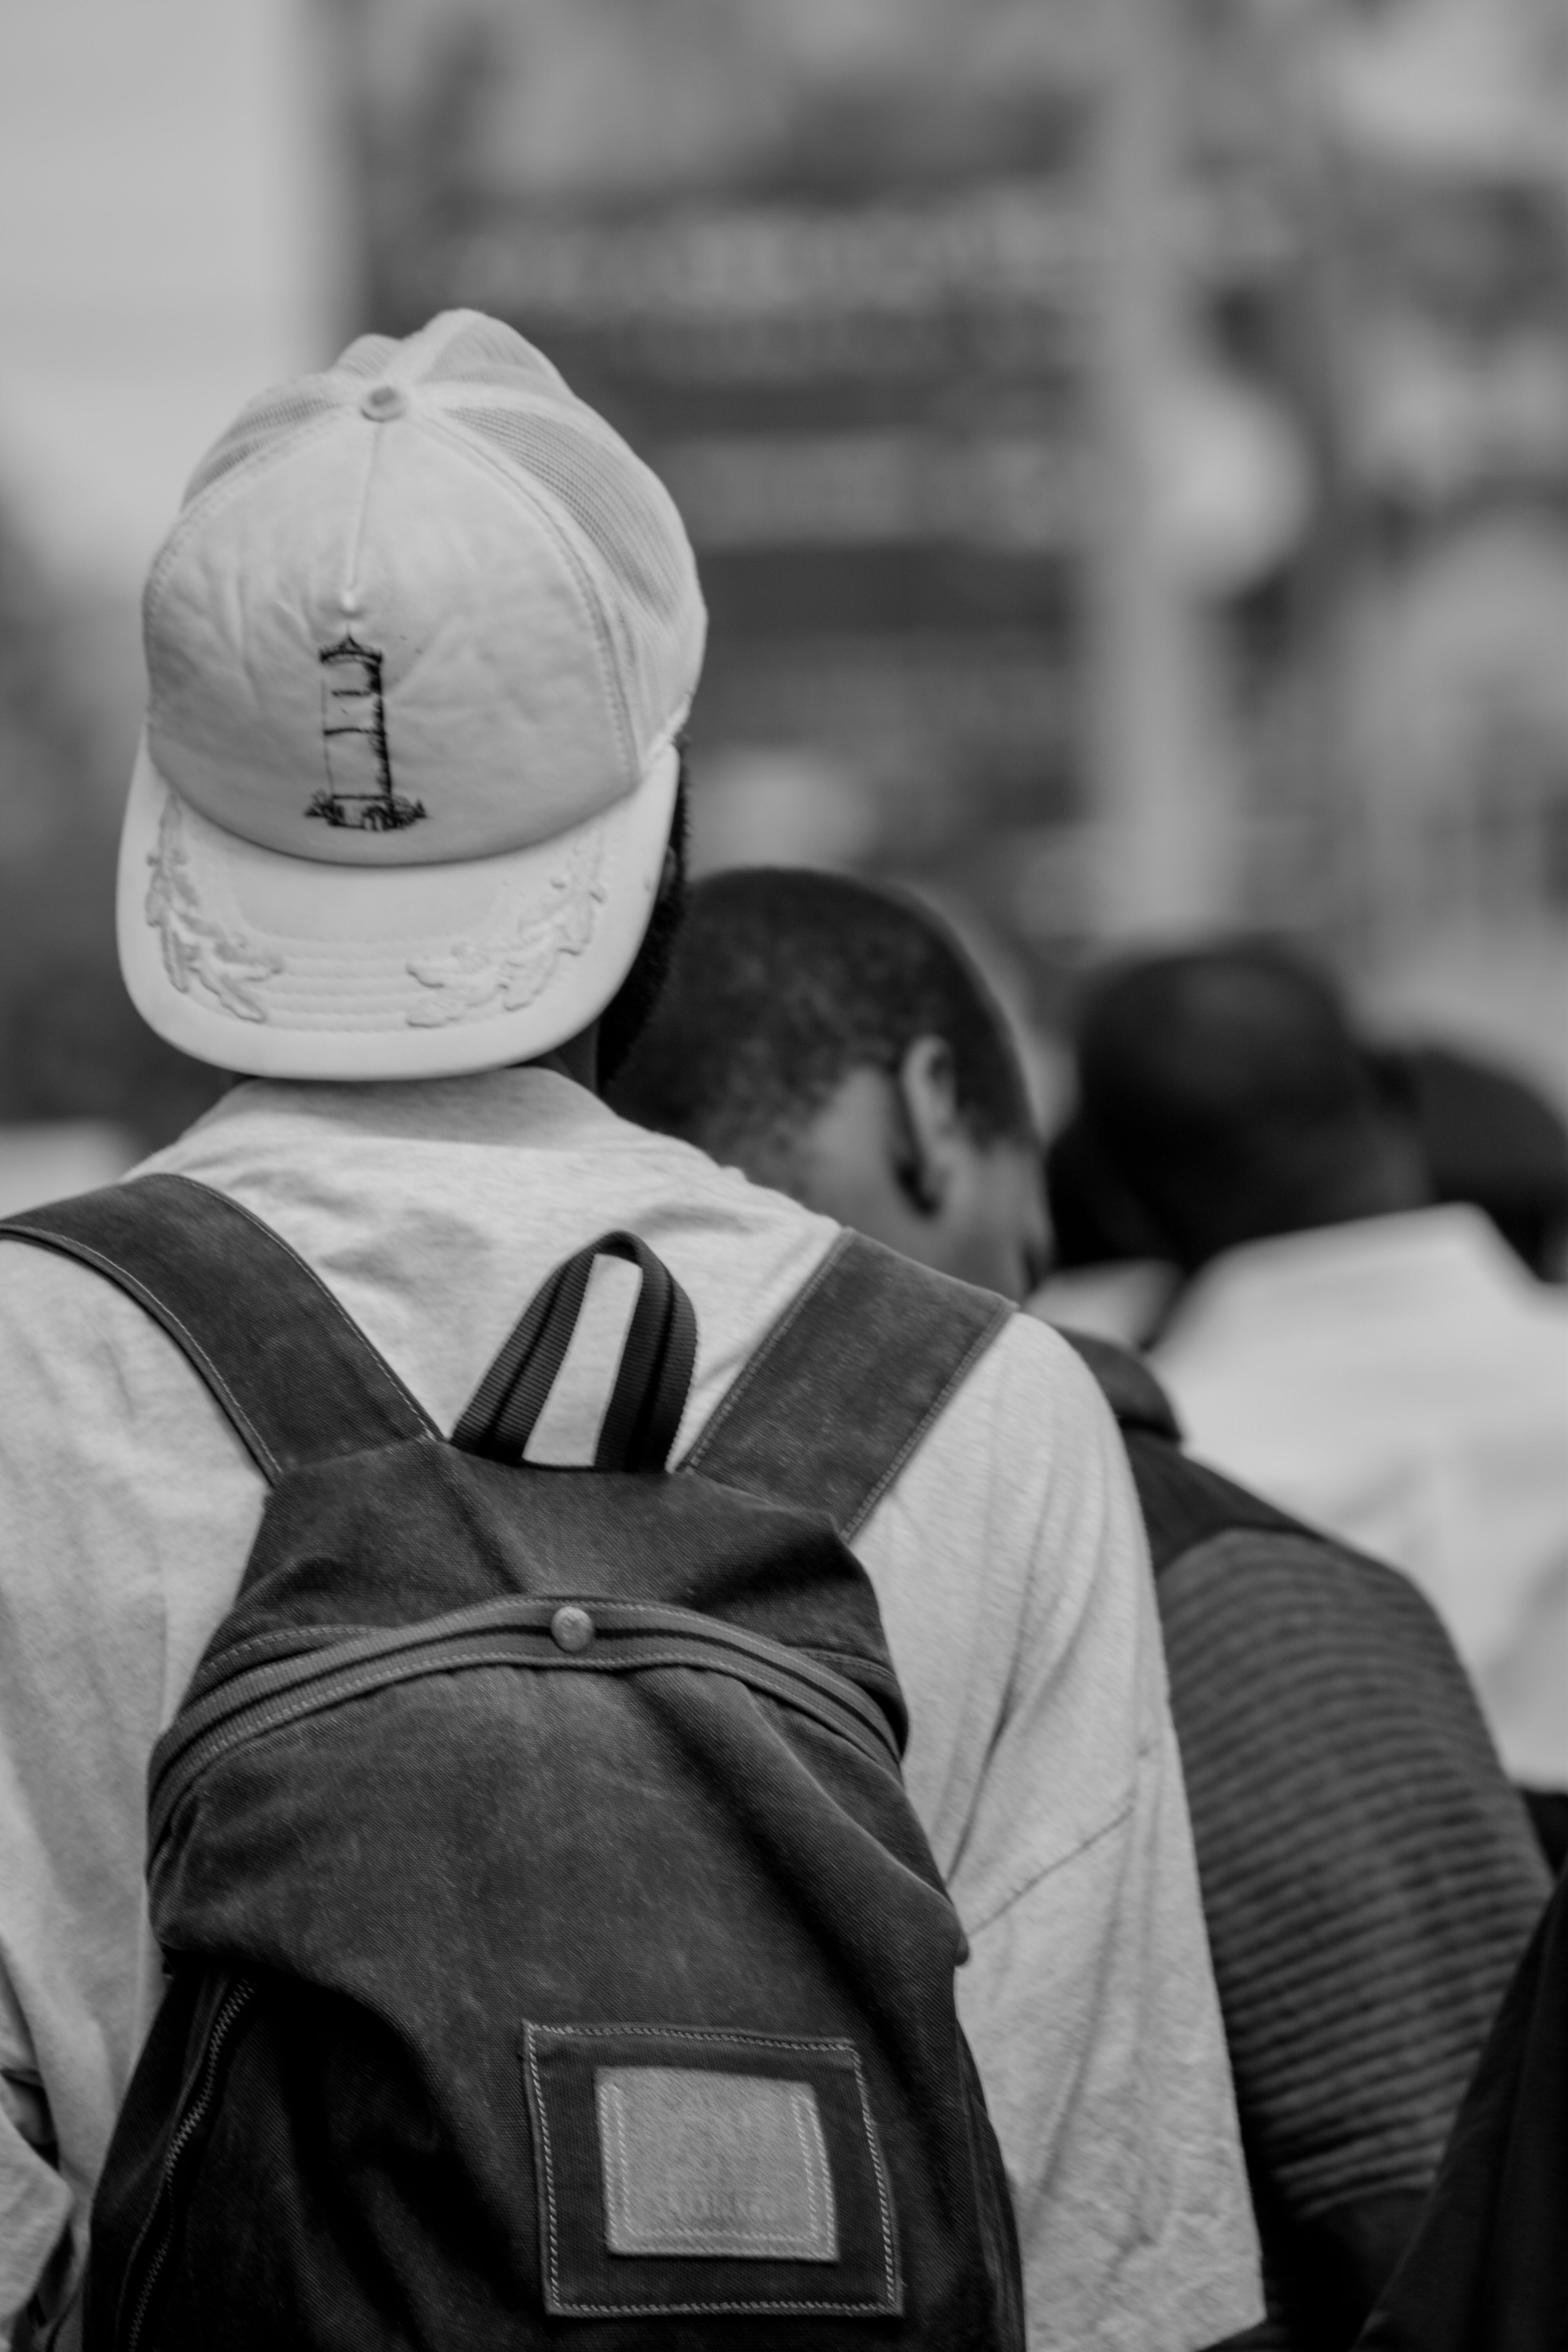 Grayscale Photo Of Person Wearing Cap